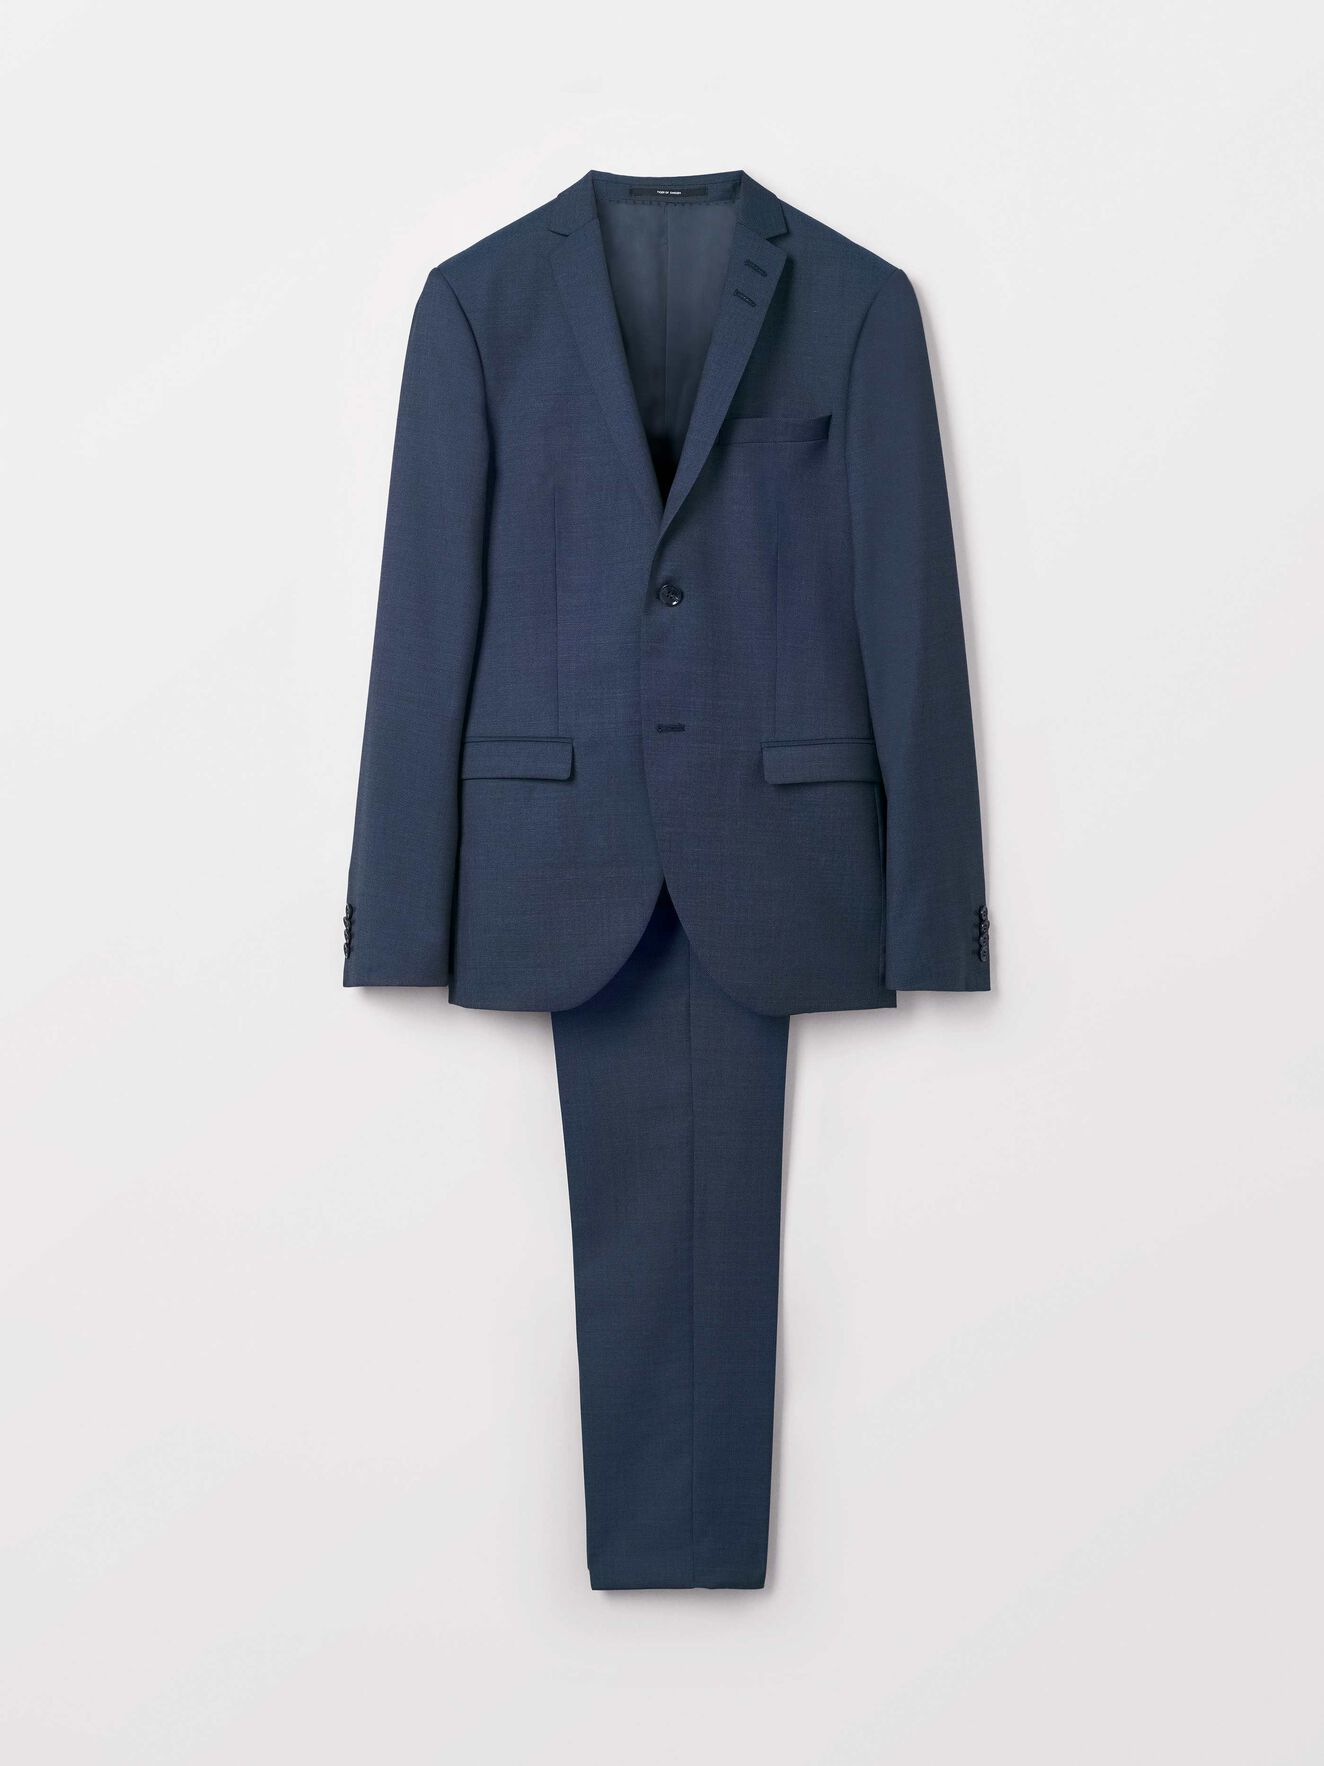 Jil 8 Suit in Country Blue from Tiger of Sweden